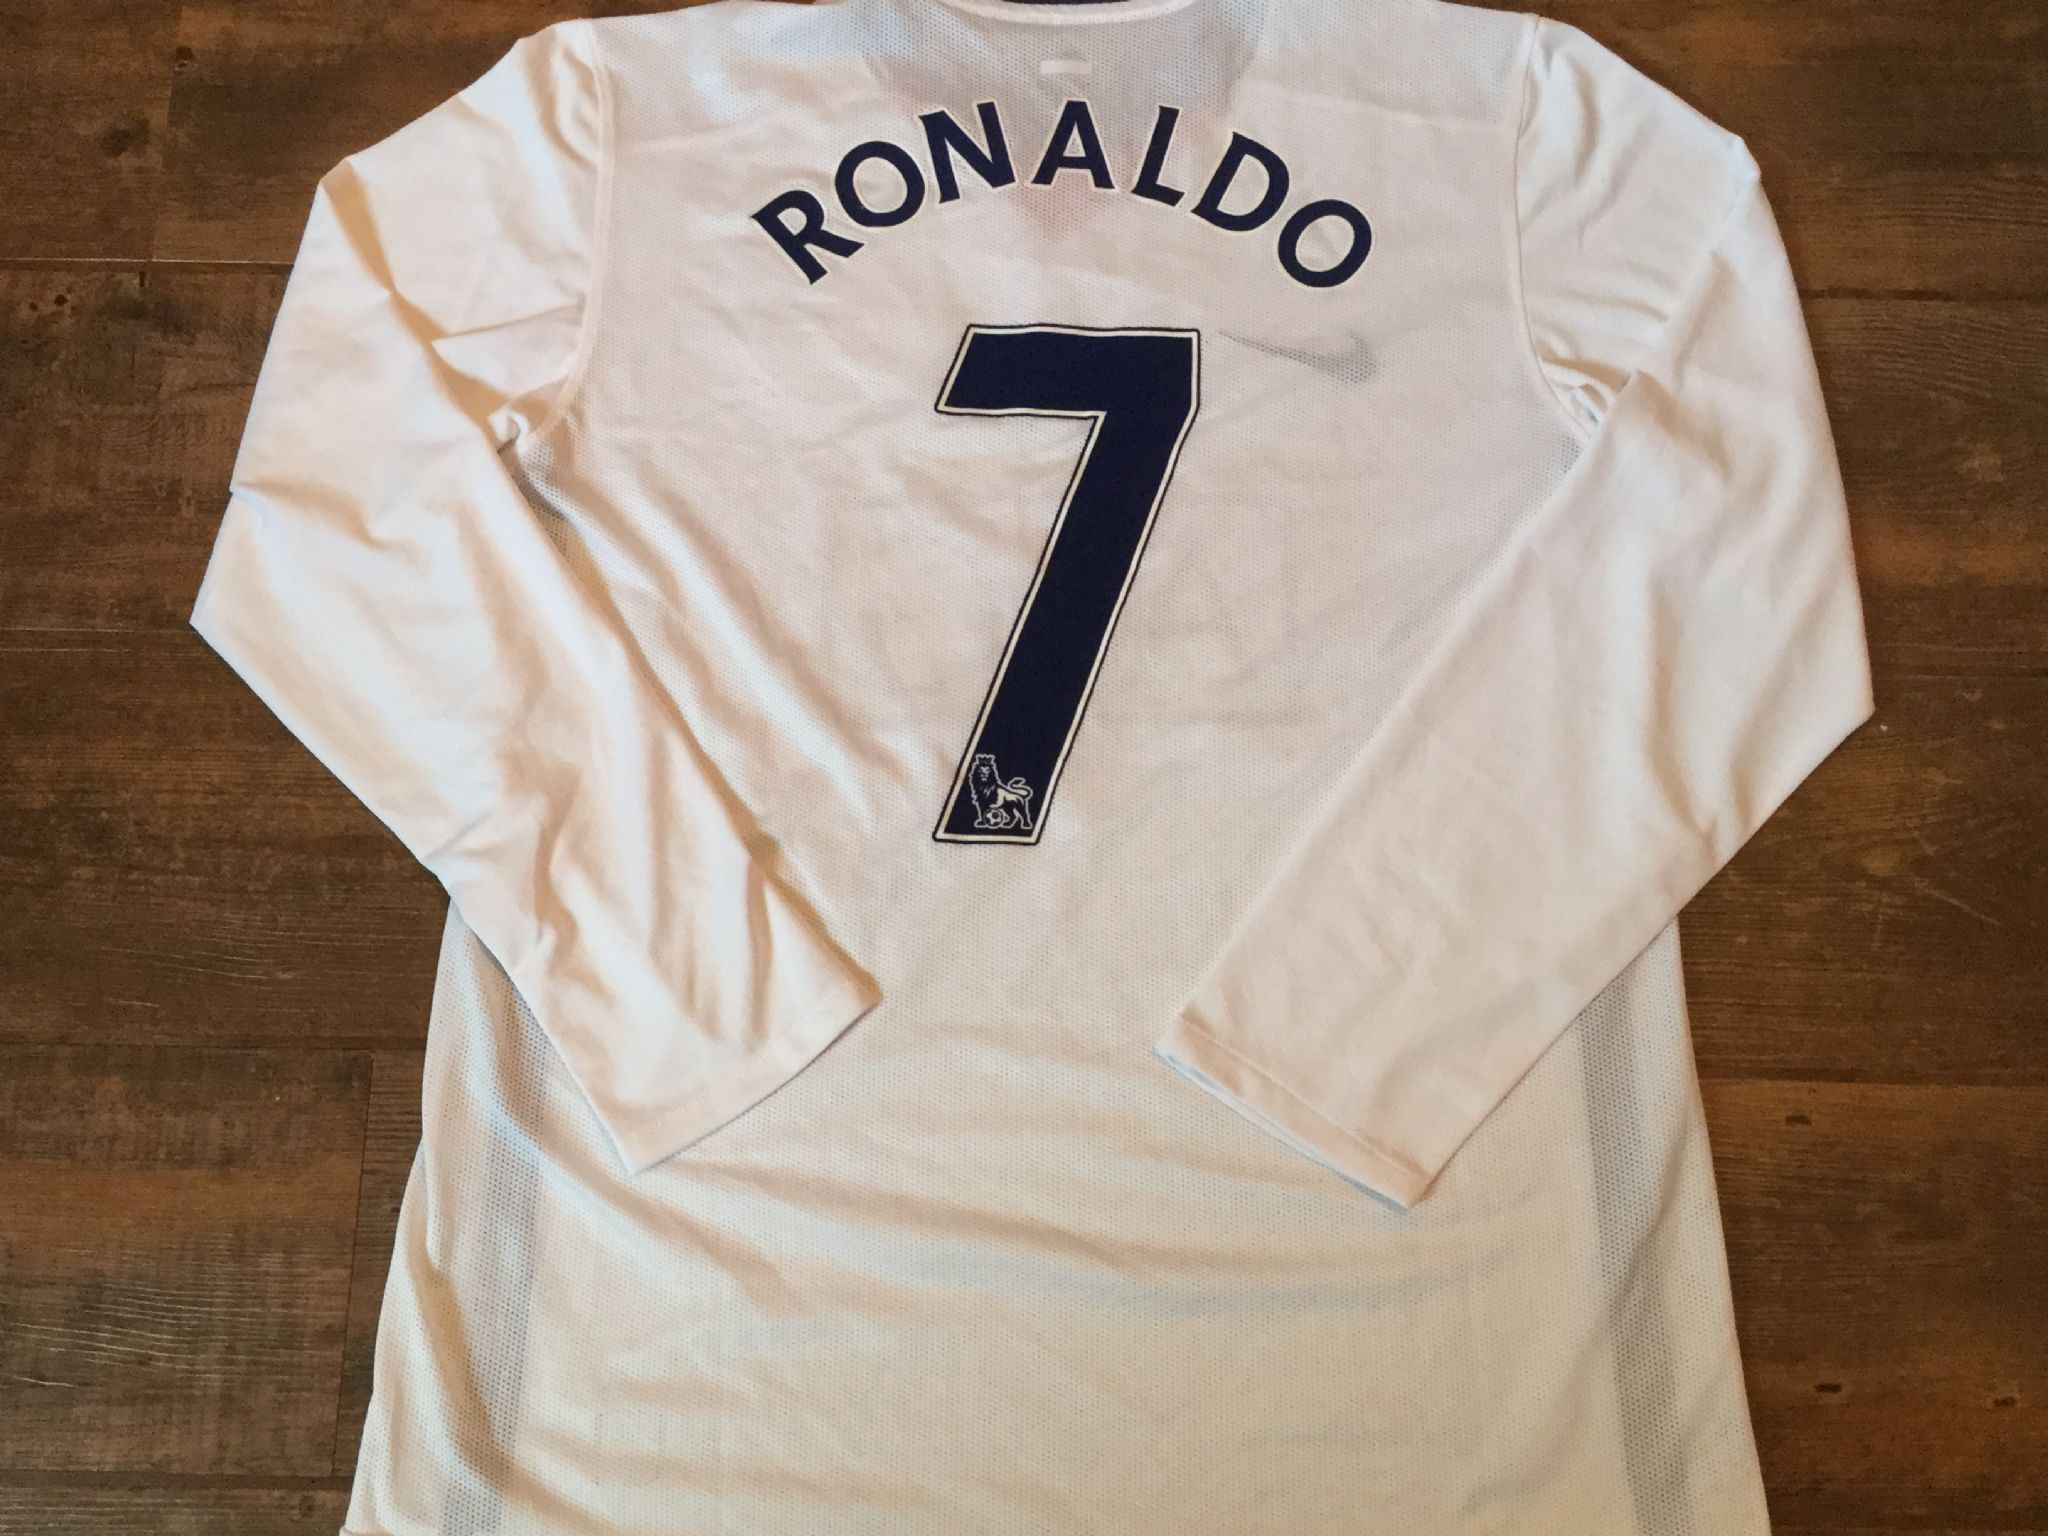 66334633a 2008 2010 Manchester United L s Ronaldo Player Issue Football Shirt Adults  XL